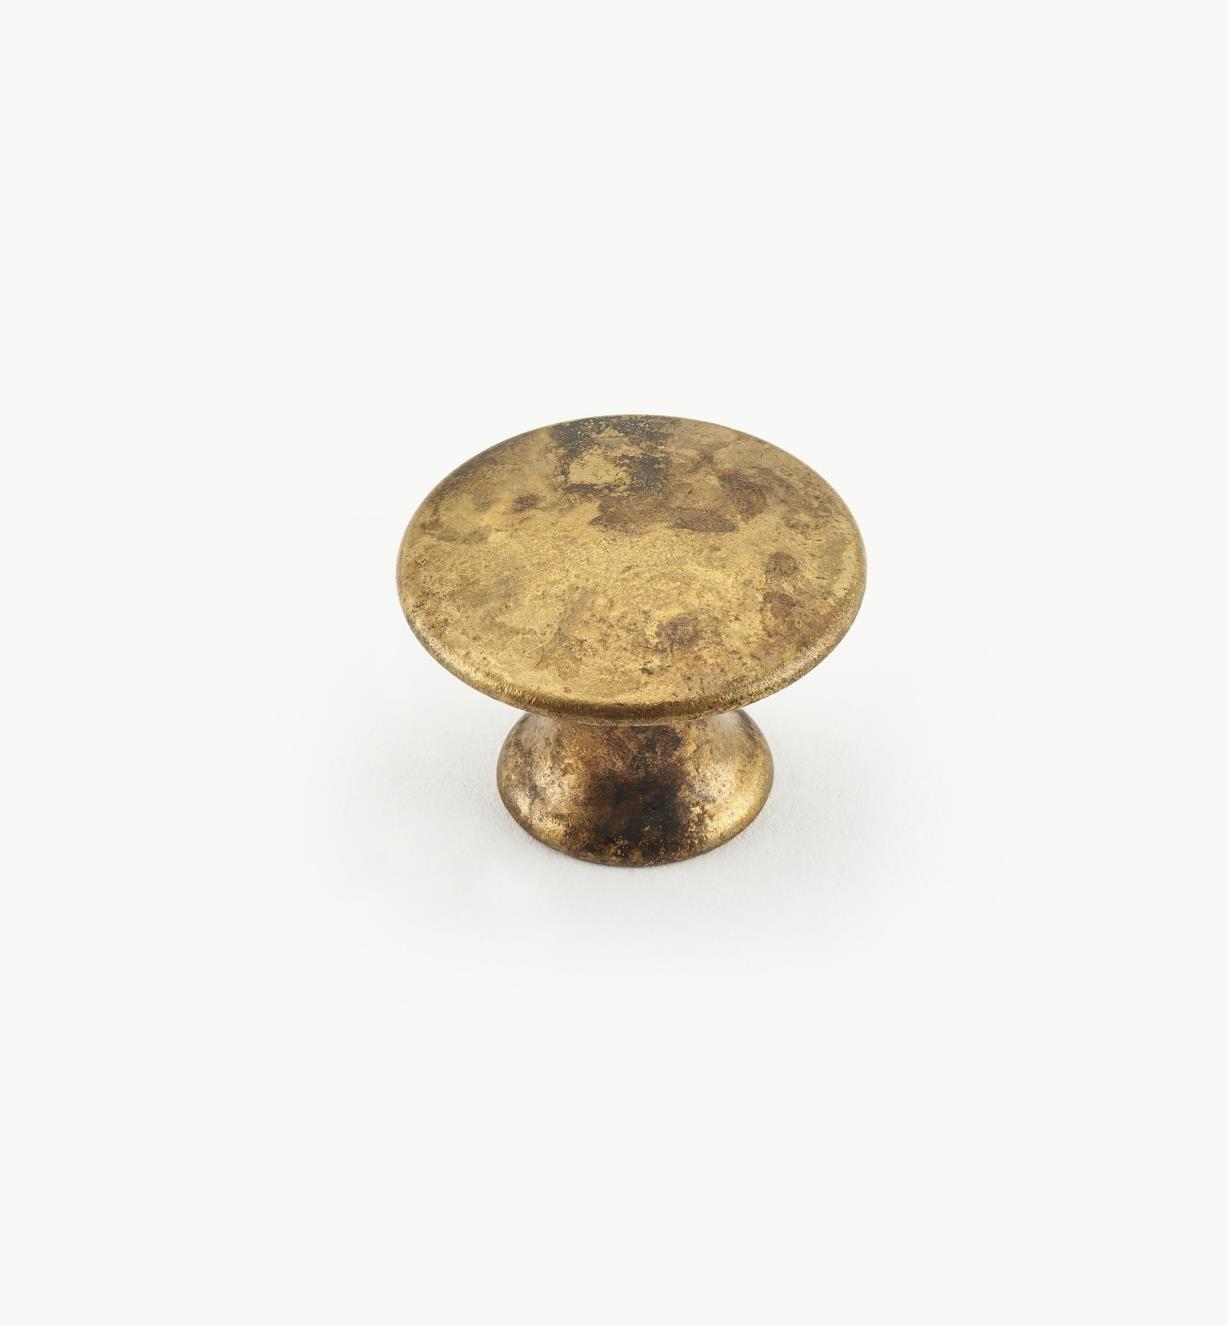 01A0320 - 20mm x 15mmOld Brass Plain Knob